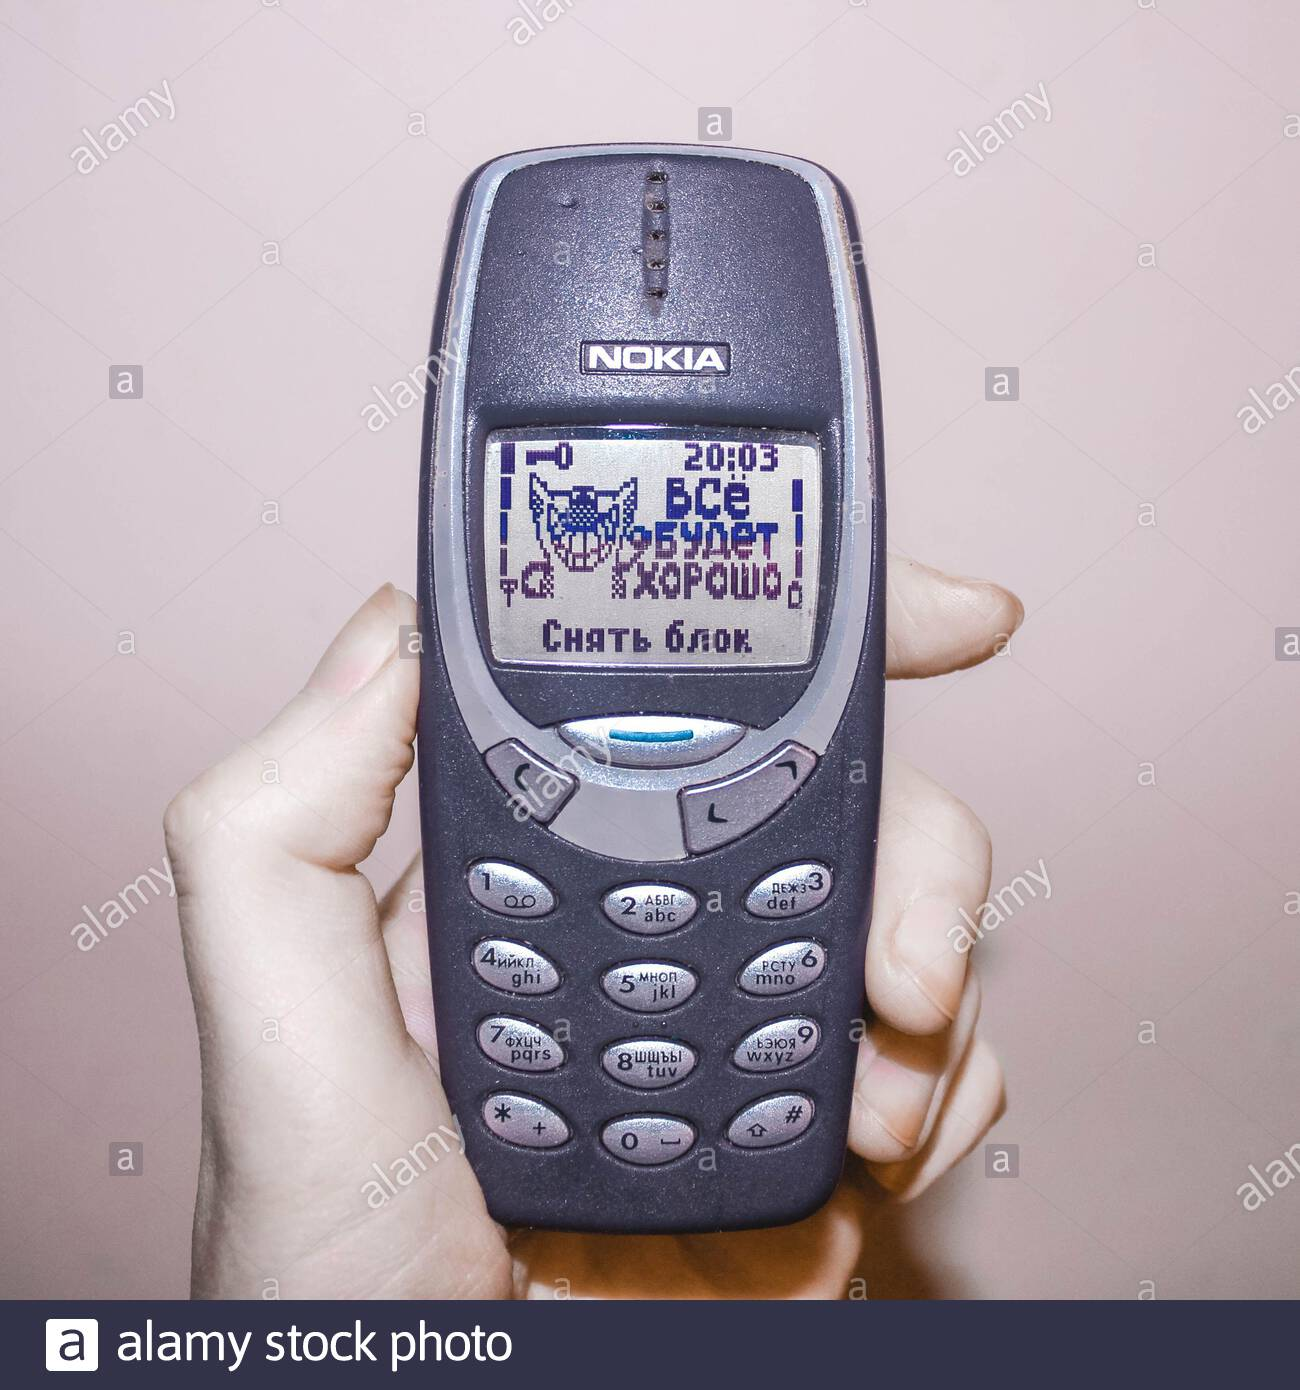 A Phone In A Hand Nokia 3310 Blue From The Year 2000 Nokia Is An Electronics Company Illustrative Editorial Image On White Background Isolated Stock Photo Alamy